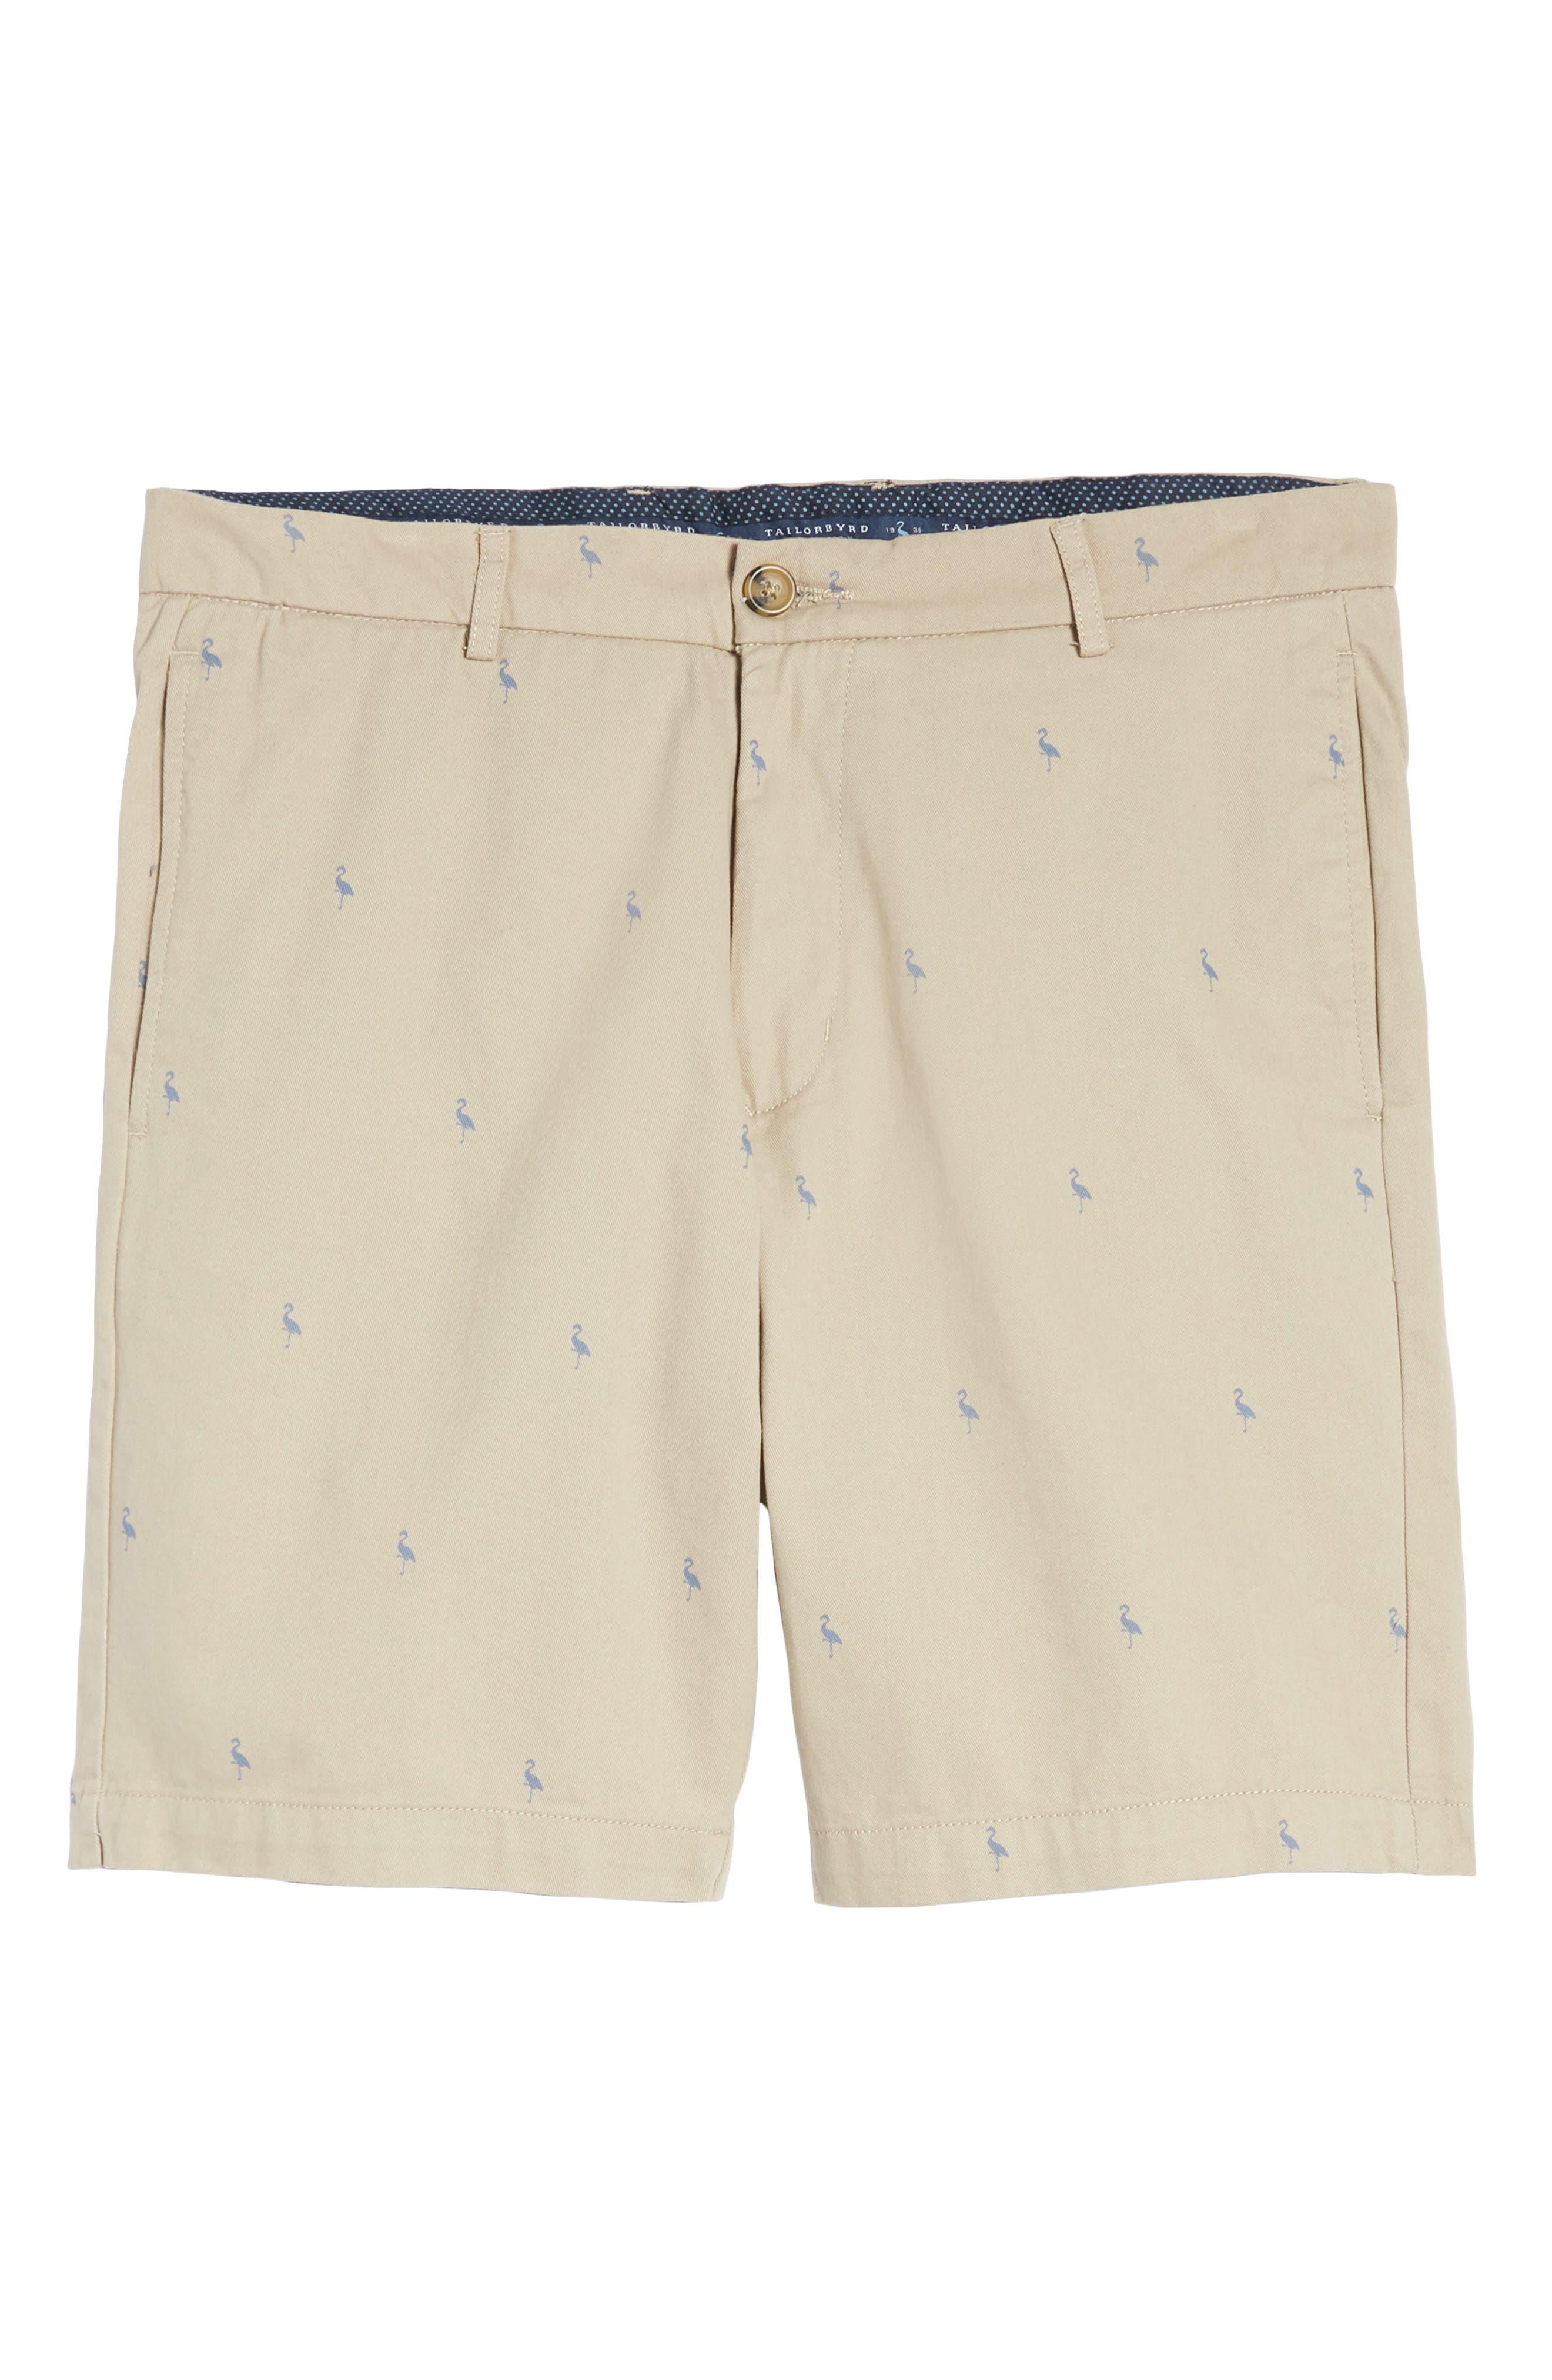 Baden Bird Regular Fit Chino Shorts,                             Alternate thumbnail 6, color,